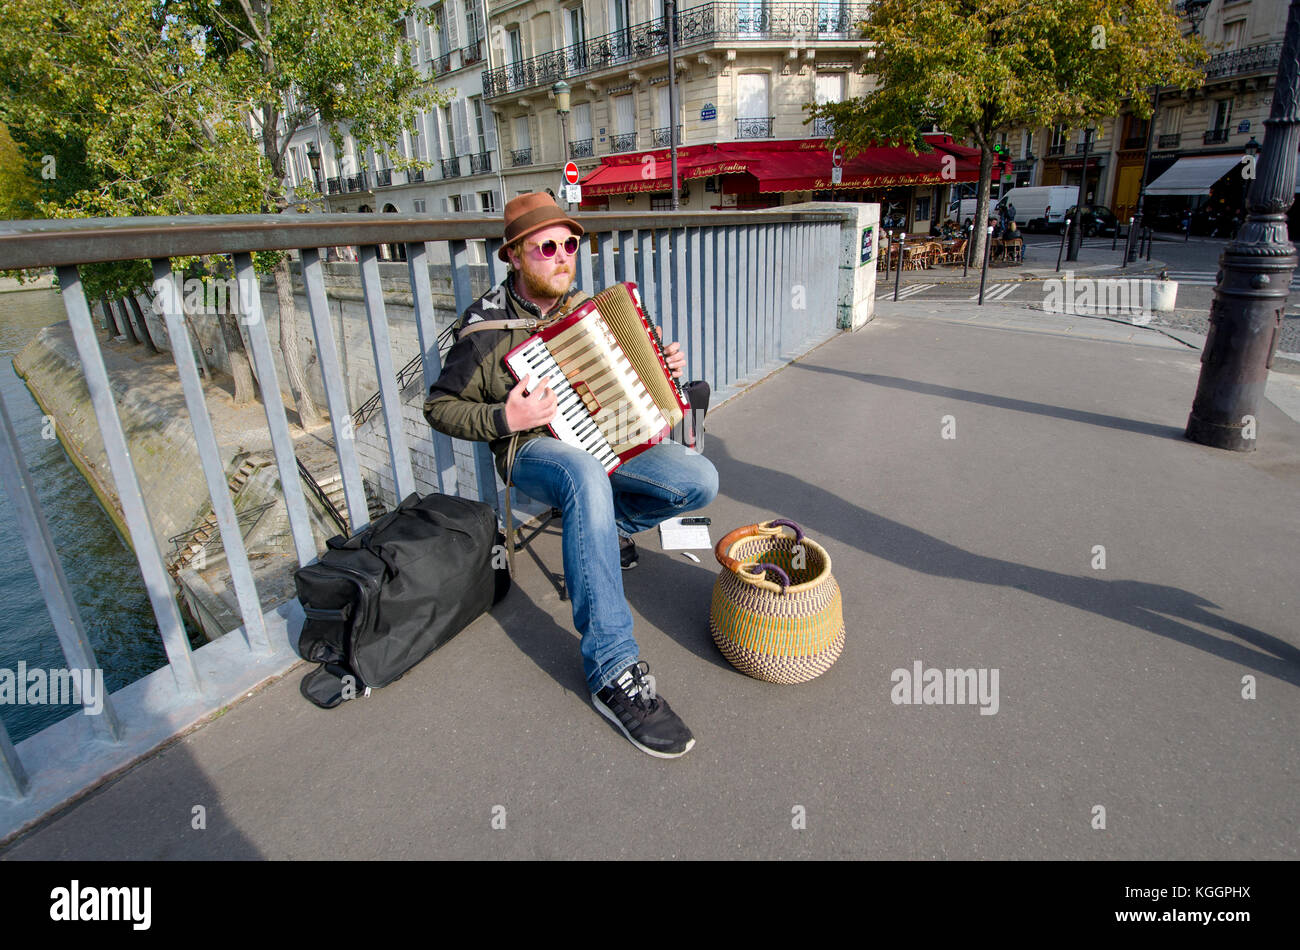 Paris, France. Pont Saint-Louis, accordion player busking - Stock Image